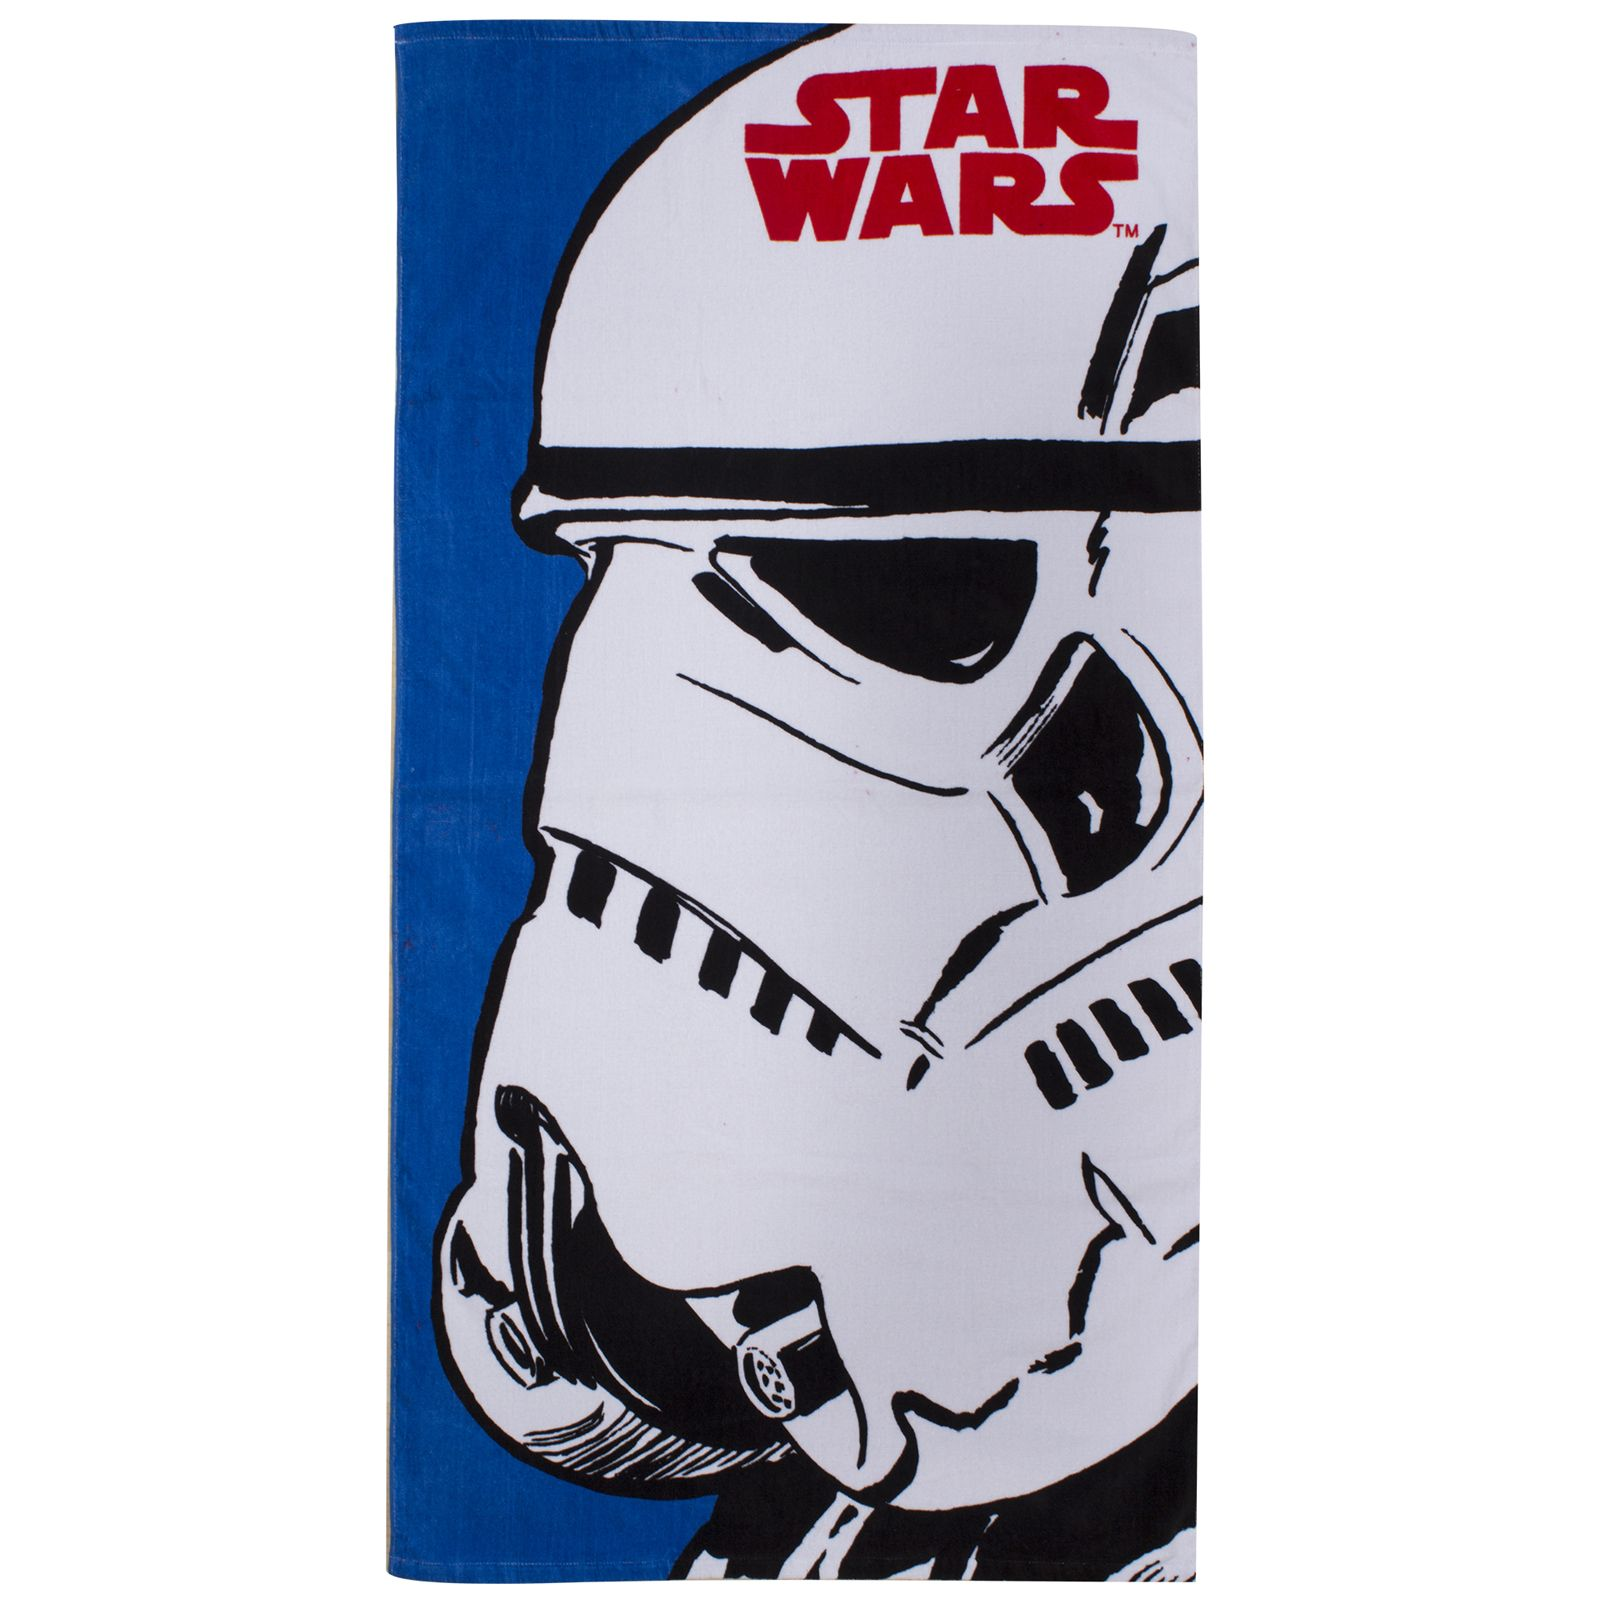 star wars 39 stormtrooper 39 handtuch 70cm x 140cm neu ebay. Black Bedroom Furniture Sets. Home Design Ideas